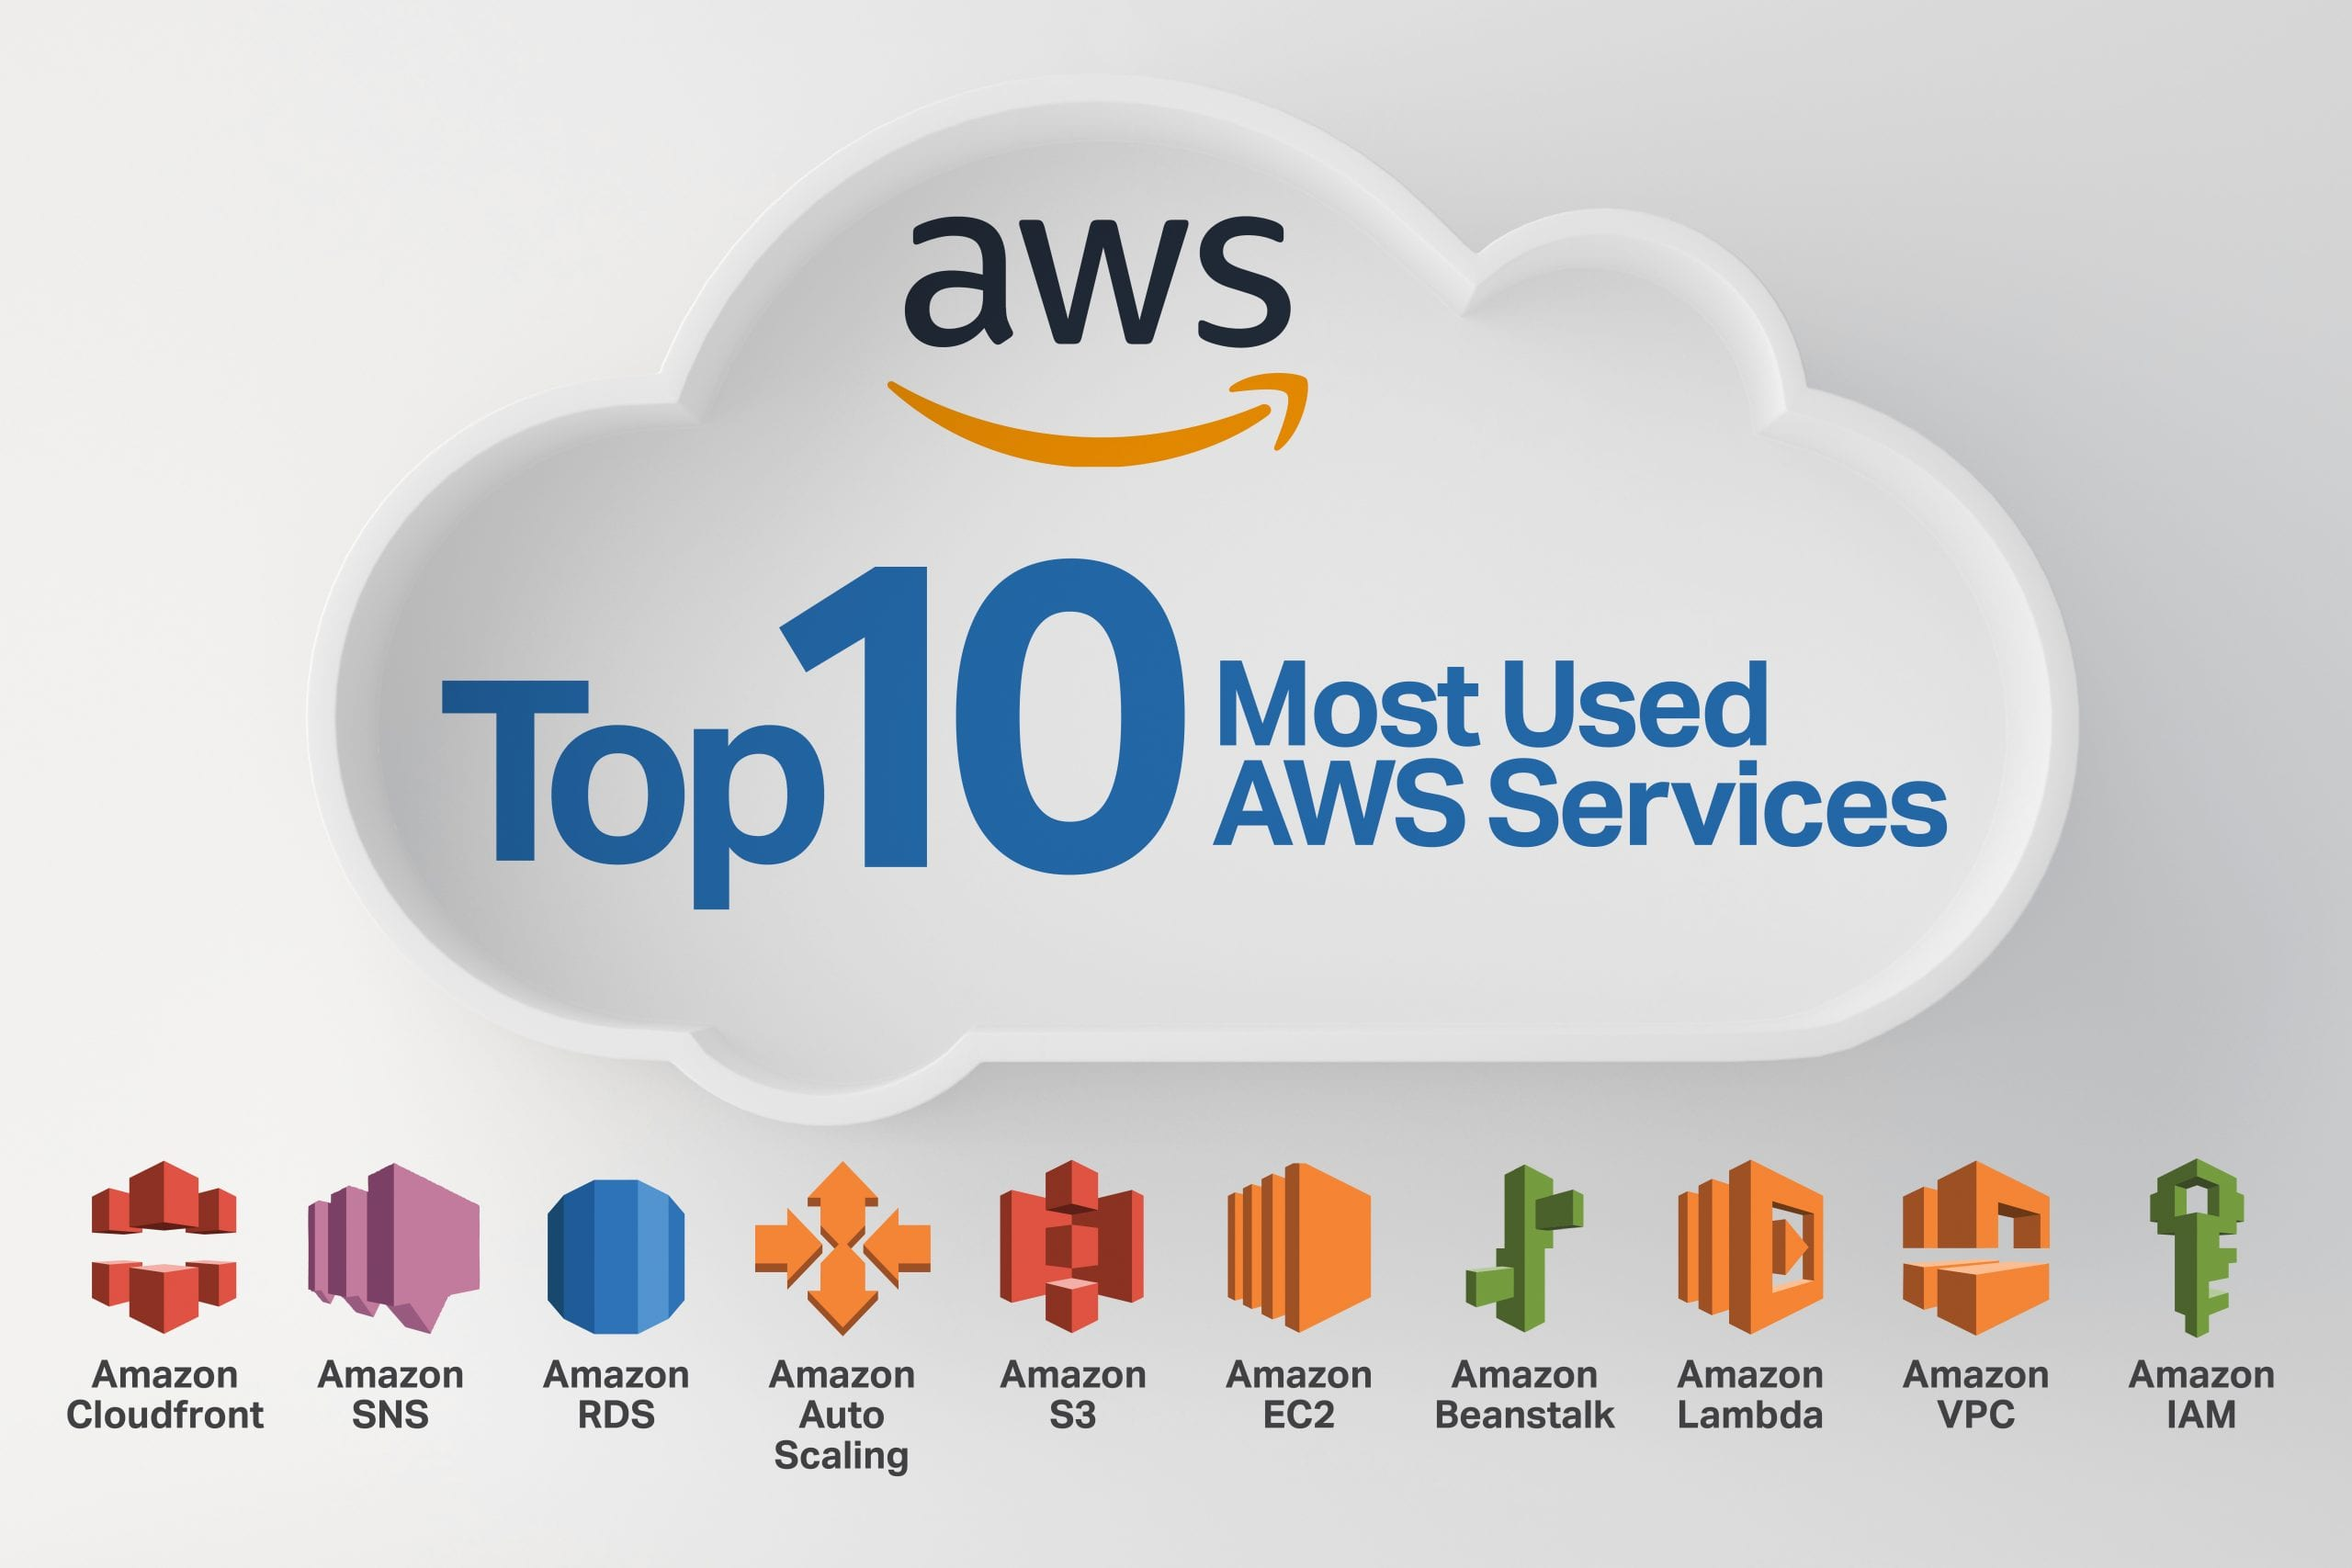 The Top 10 Most Used AWS Services